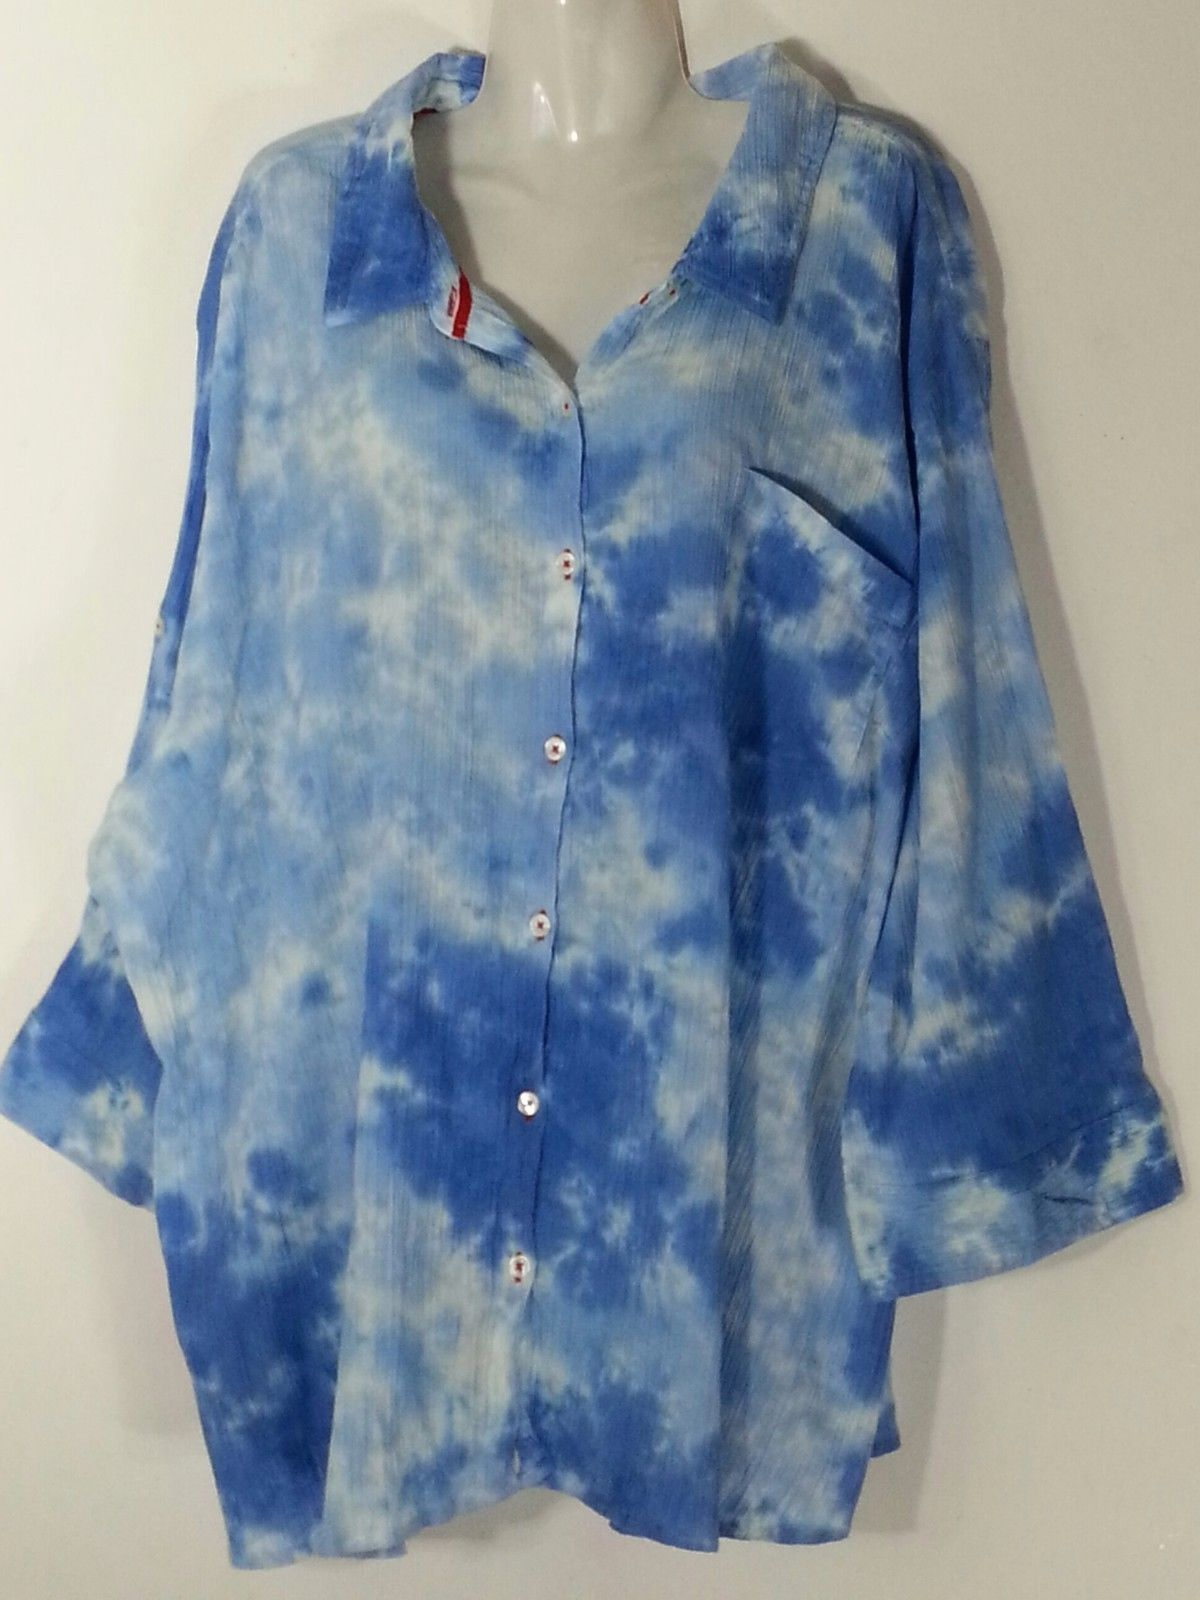 d5bbbfc5ac08e 57. 57. Previous. Catherines Button Down Top Light Blue 2X 22 24 Plus Size  Women s Shirt New